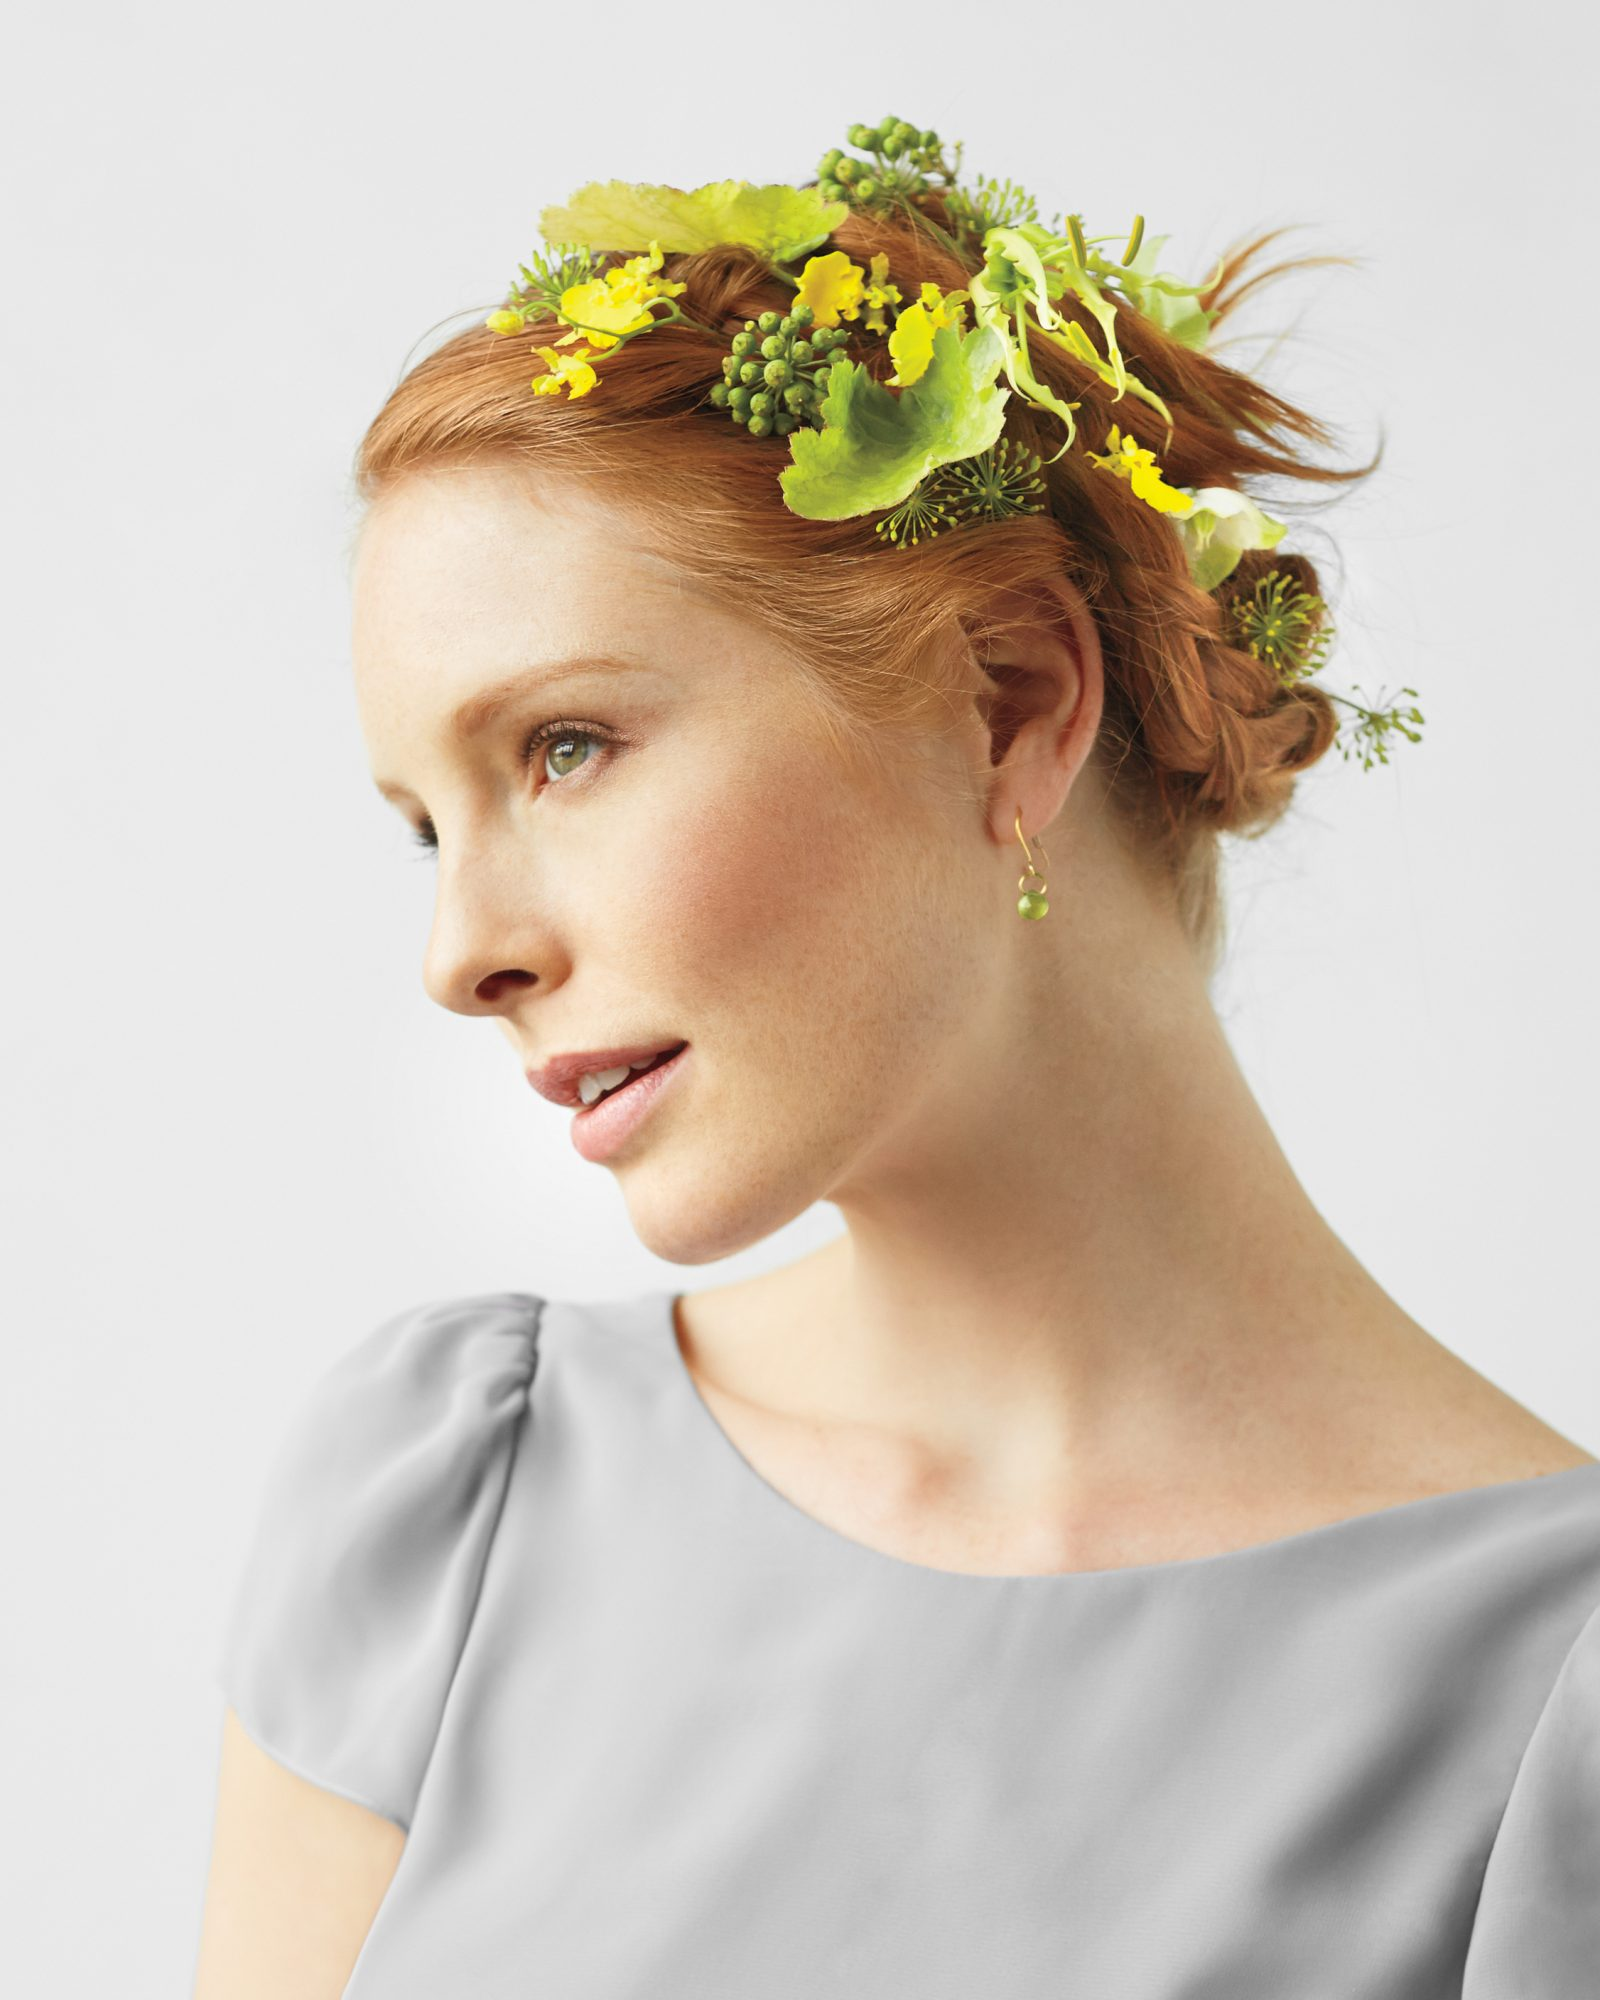 bridemaid-green-flower-hair-0337-d111712.jpg